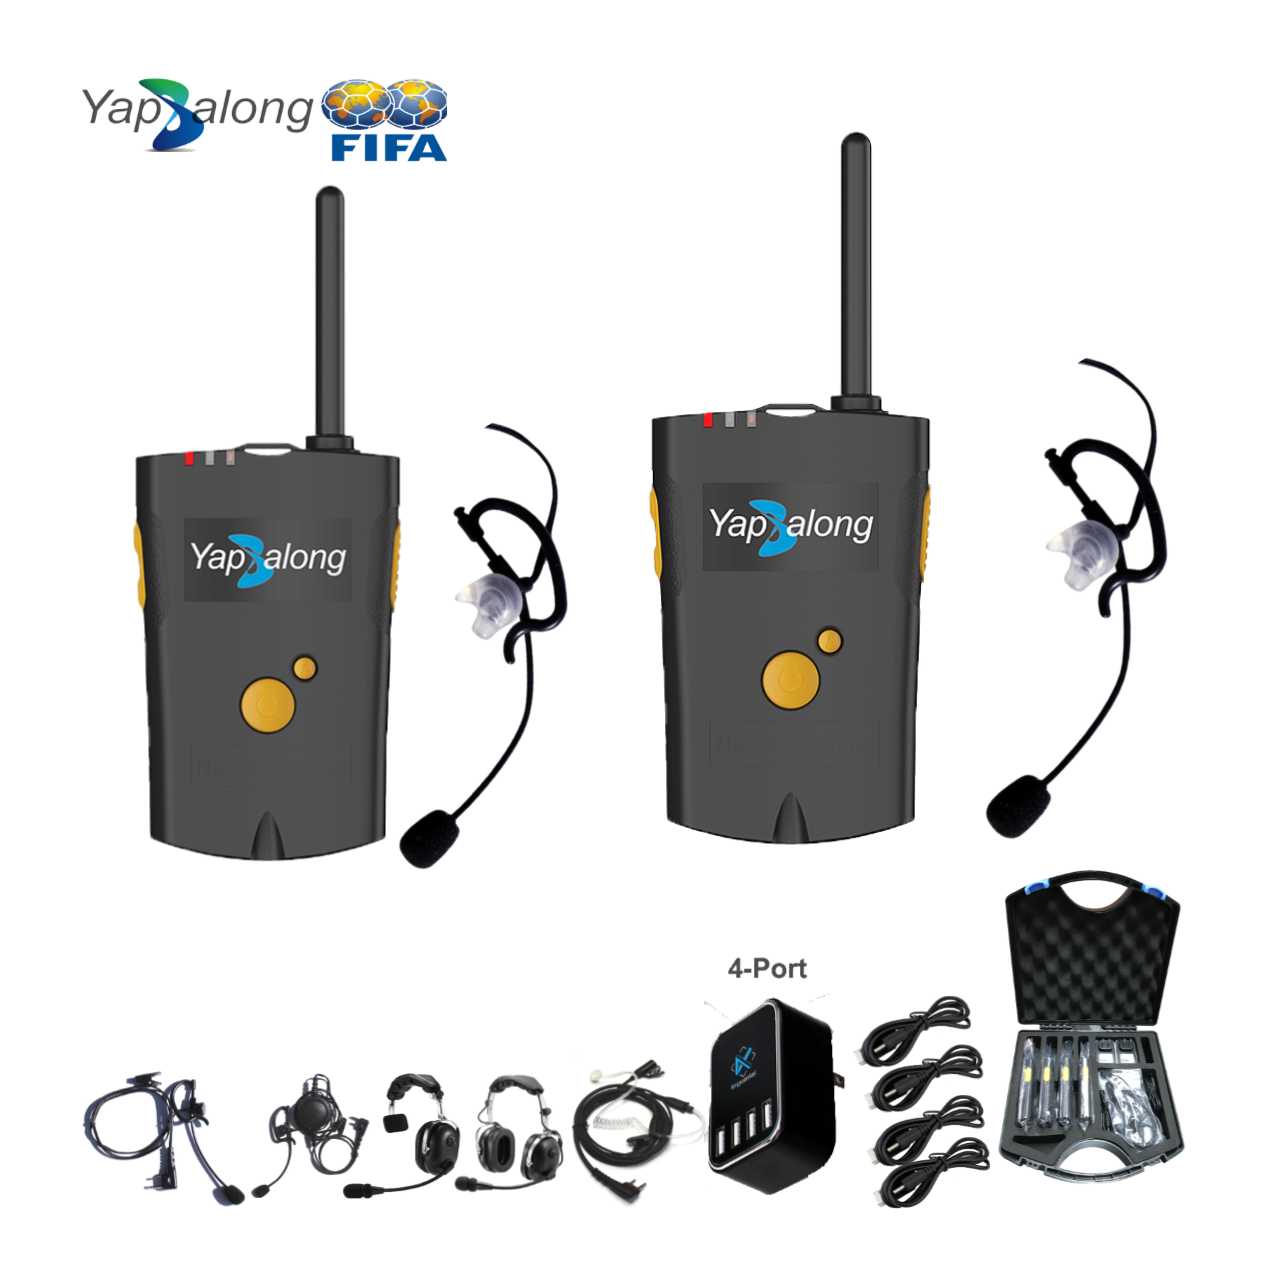 Yapalong 4000 (2-User) Complete Set Intercom Systems Intercom Systems